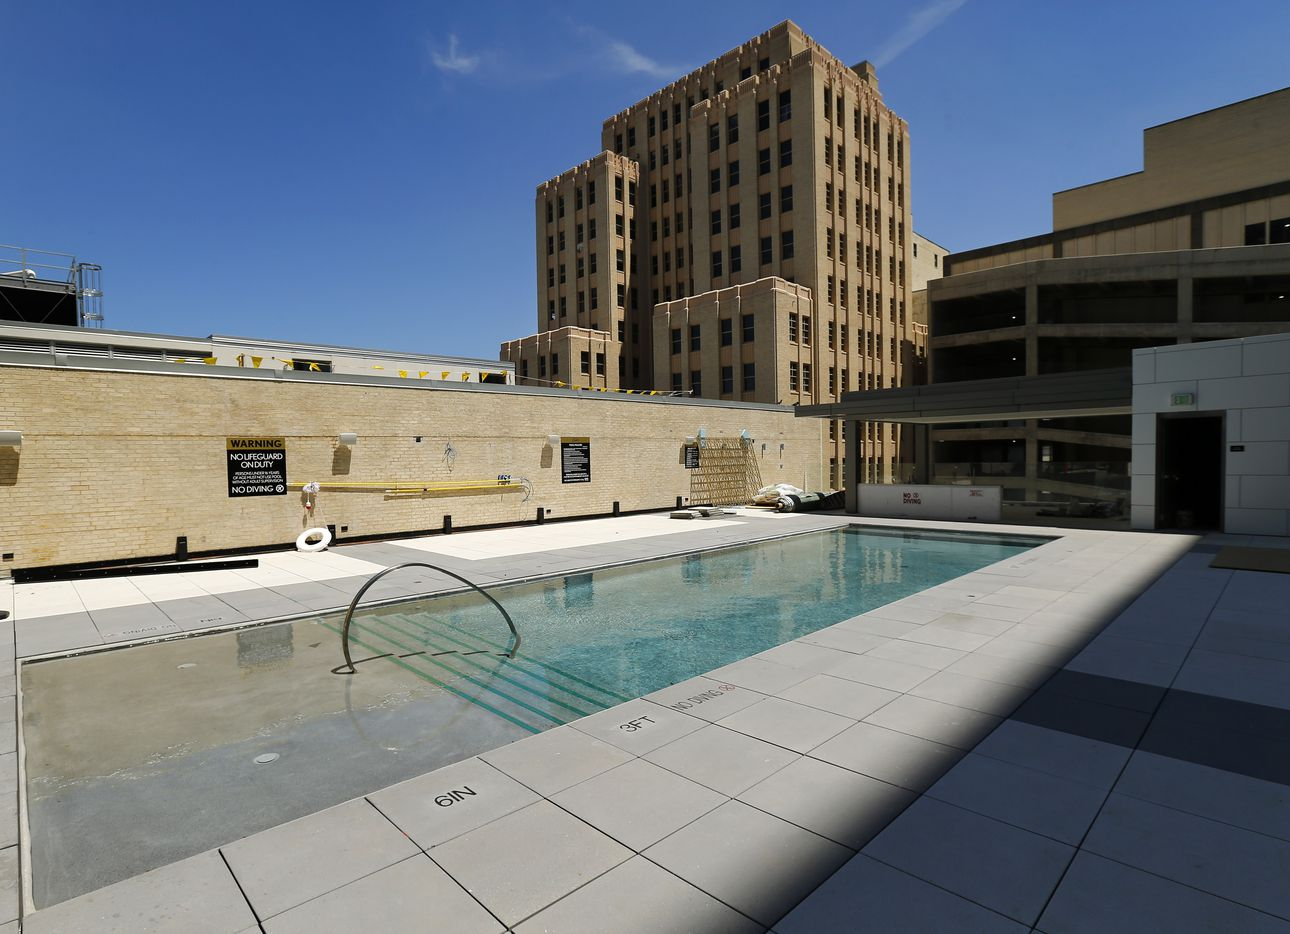 On the fourth floor is a  leisure pool and outdoor bistro area with space for cabanas at the Statler Residences in downtown Dallas.